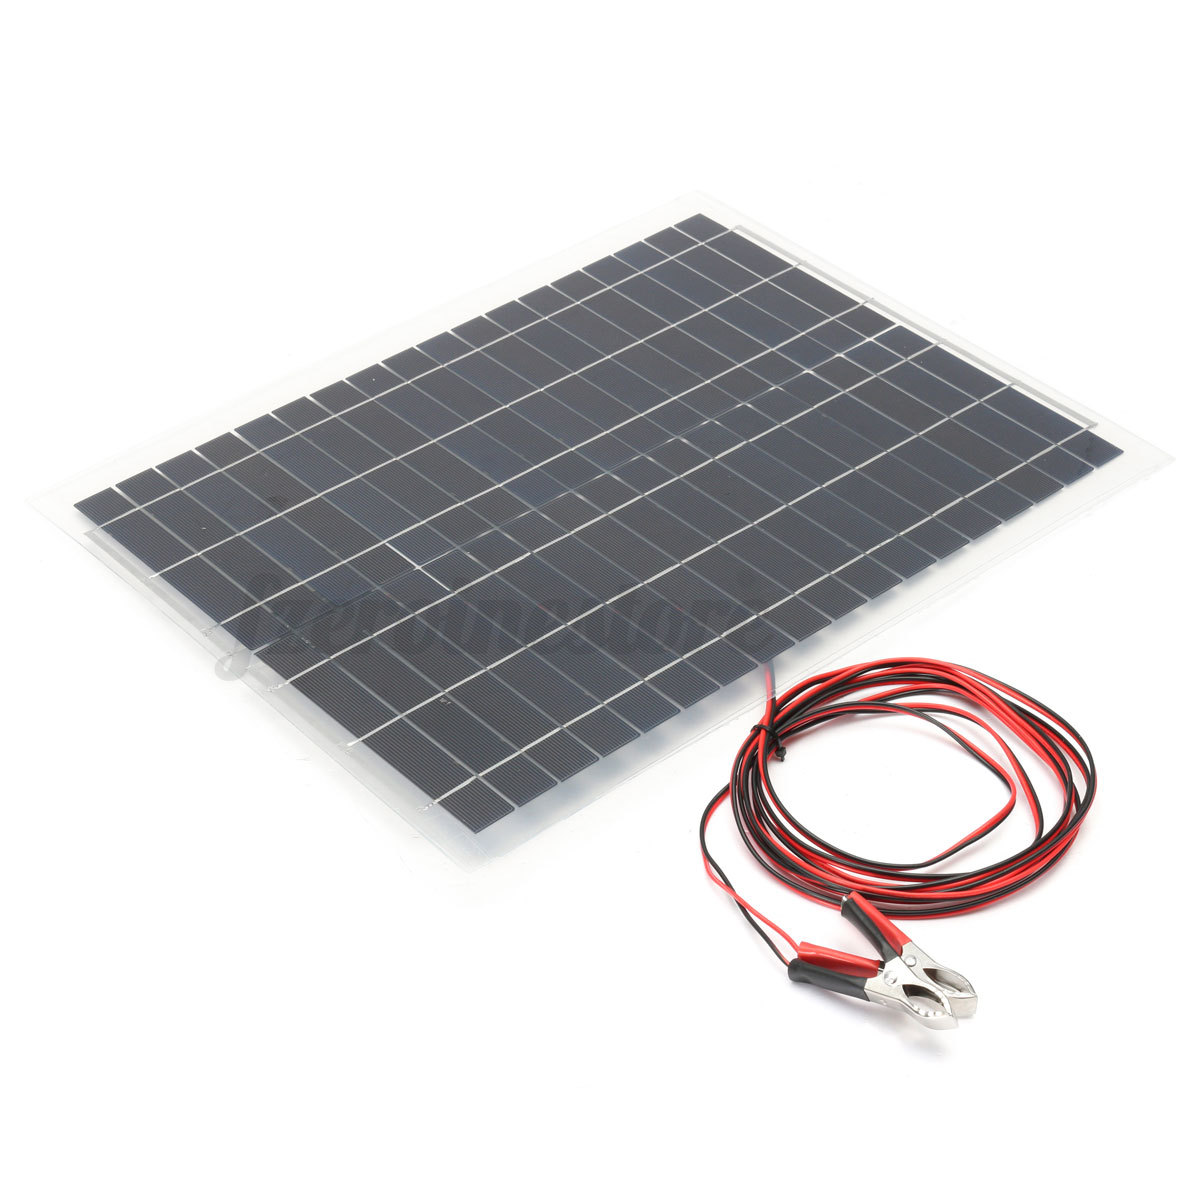 20w 12v Flexible Solar Panel Kit 4m Cable For Battery